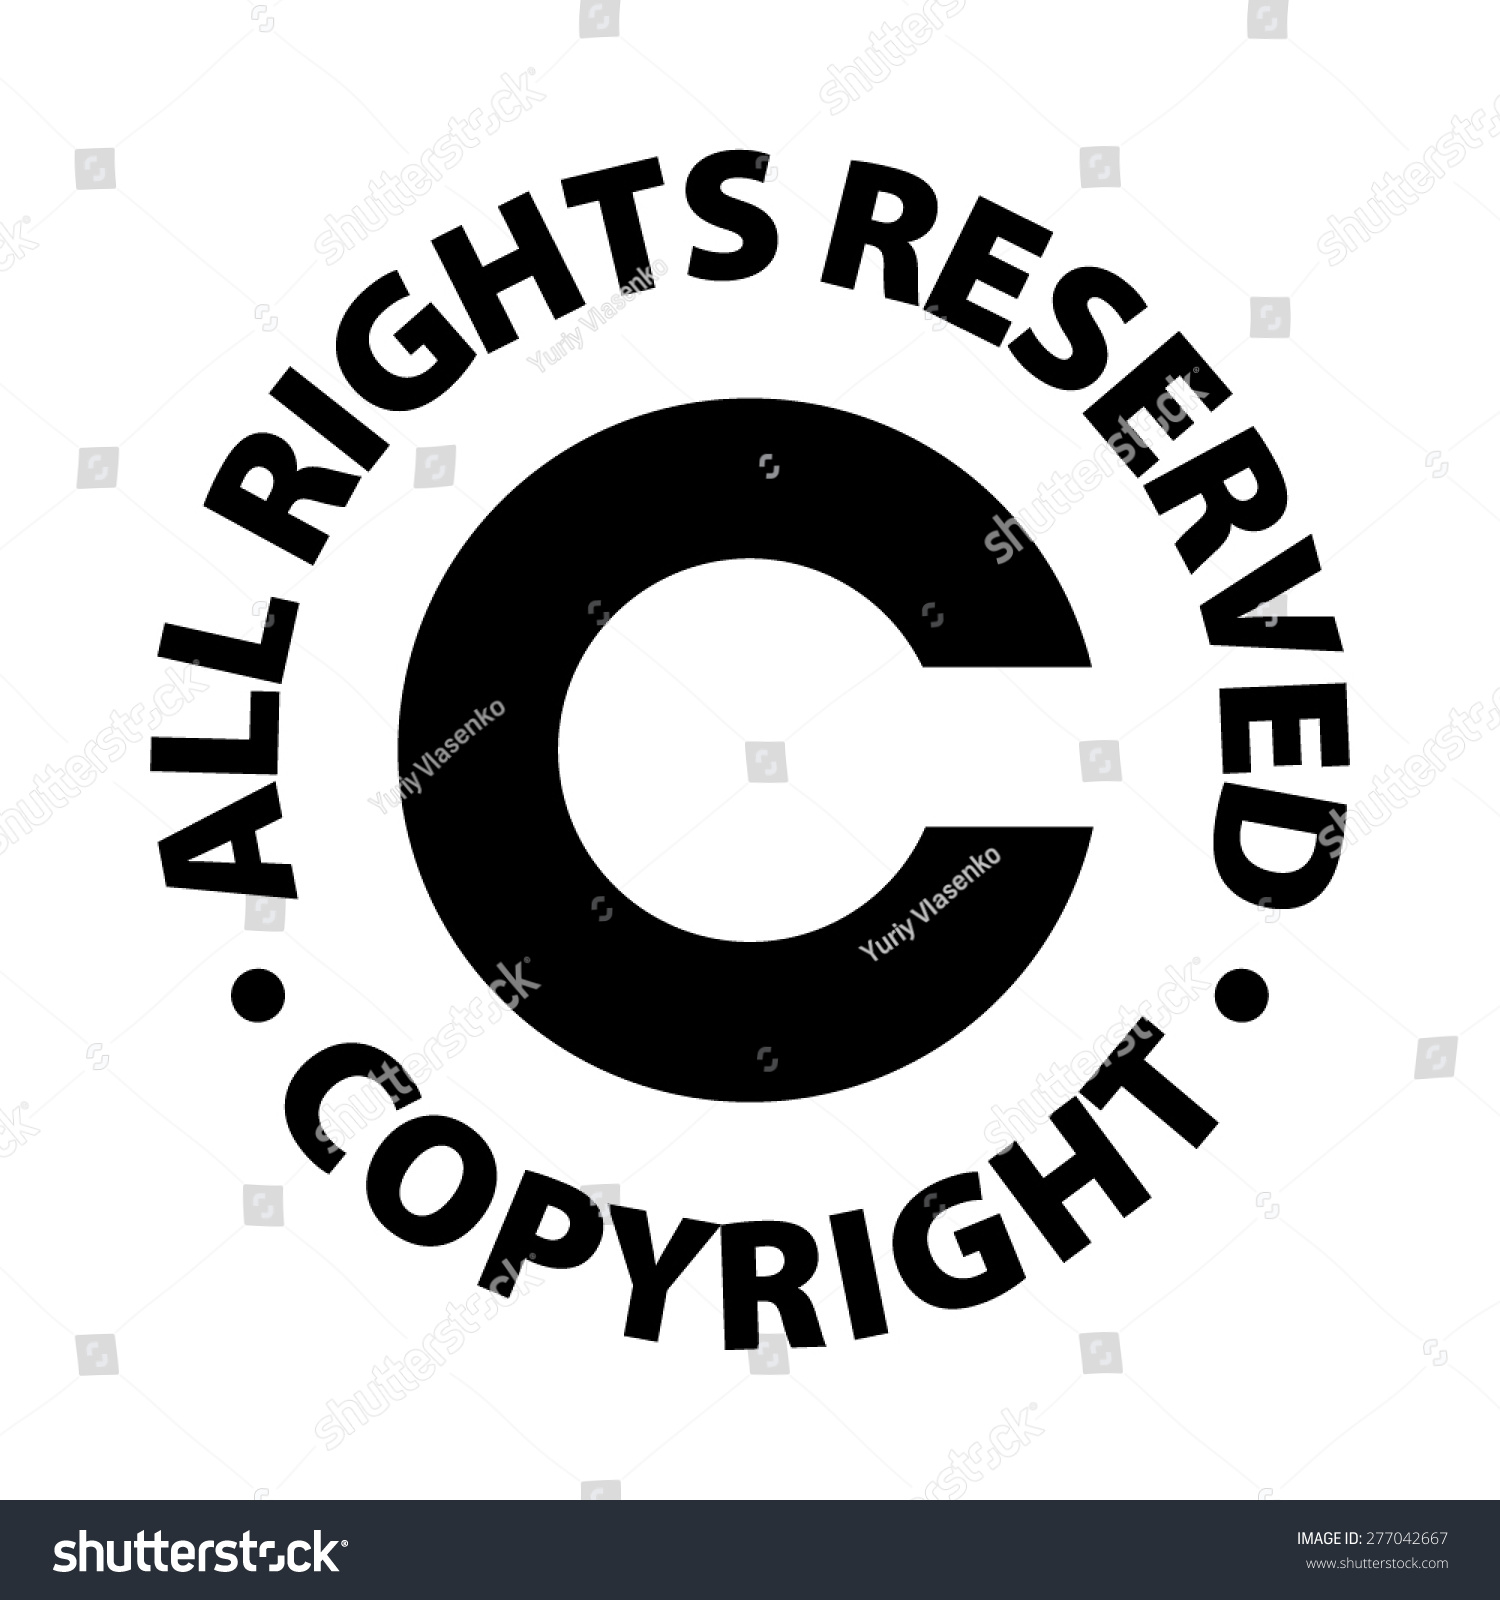 Copyright all rights reserved stock vector 277042667 shutterstock copyright all rights reserved biocorpaavc